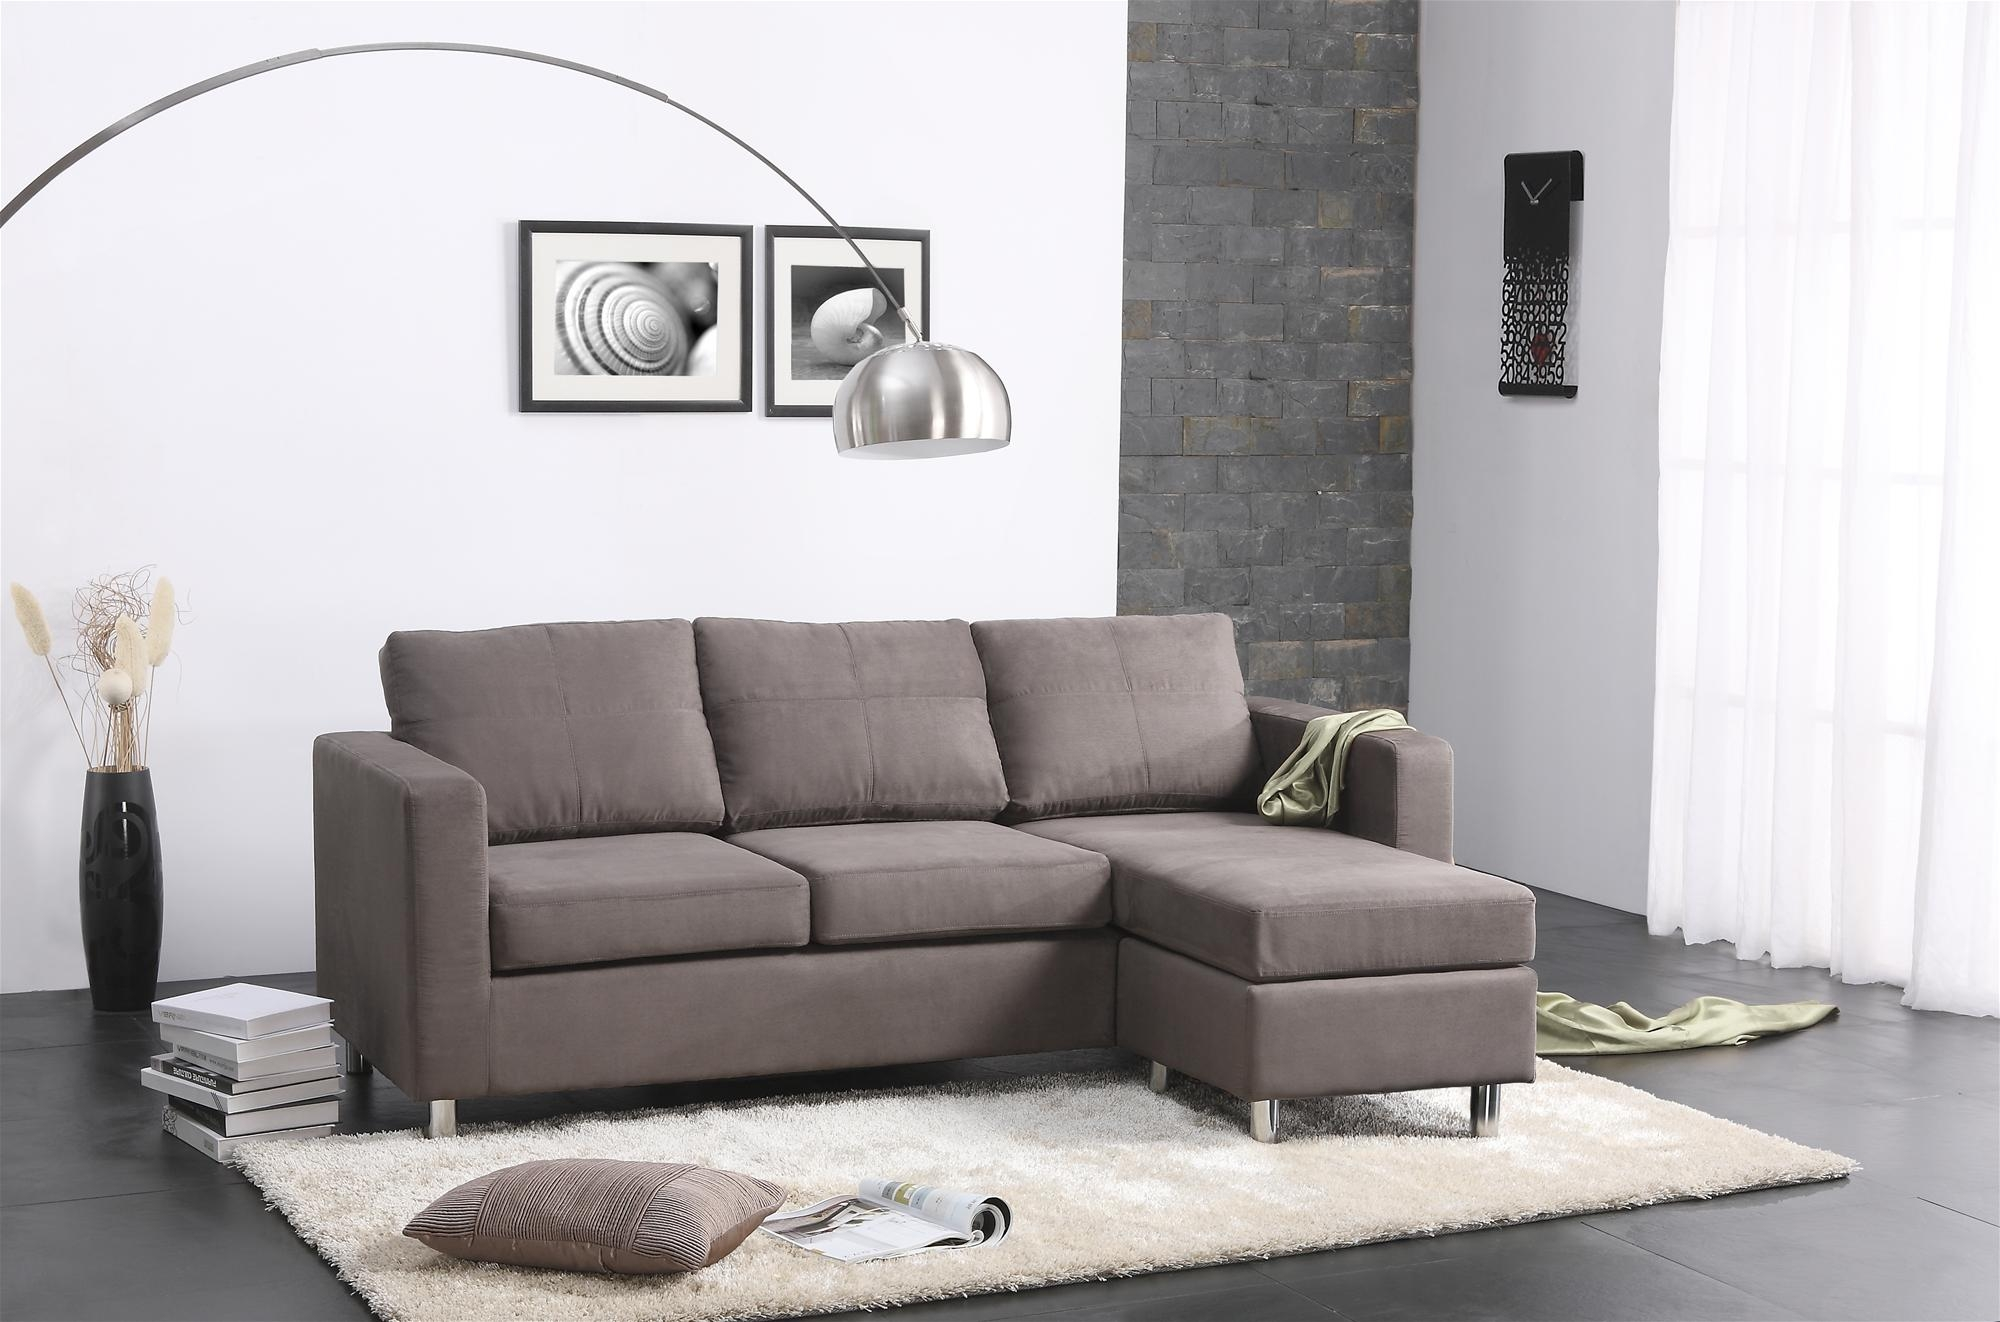 300 Small Spaces Sectional Sofa Walmart Studio Living Room With Regard To Apartment Sectional Sofa With Chaise (Photo 10 of 15)